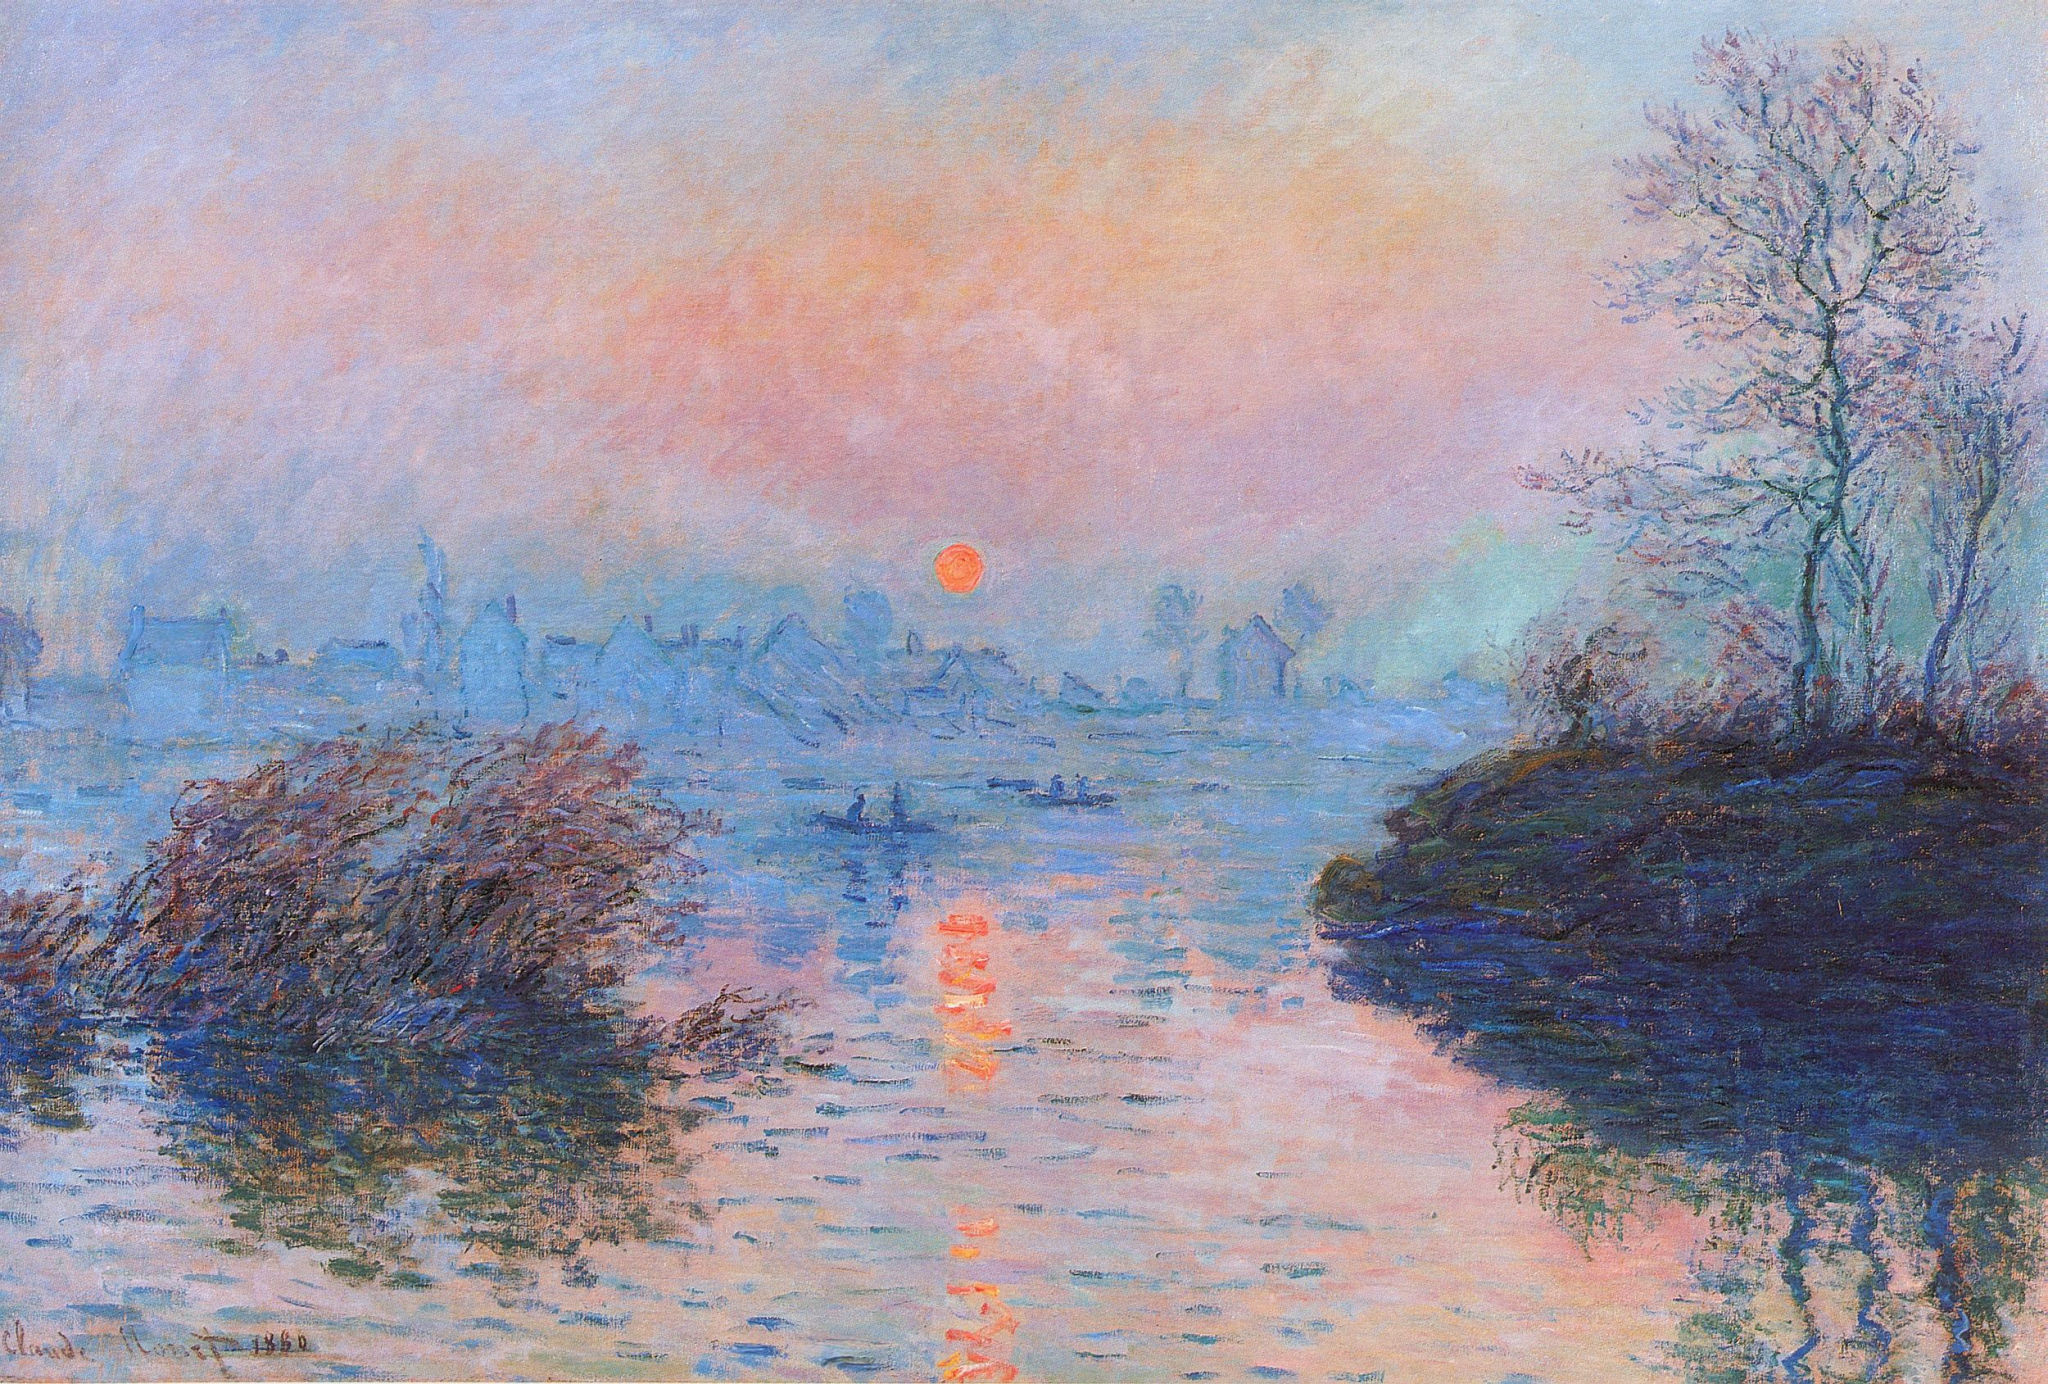 claude_monet_sunset-on-the-seine-at-lavacourt-winter-effect.jpg